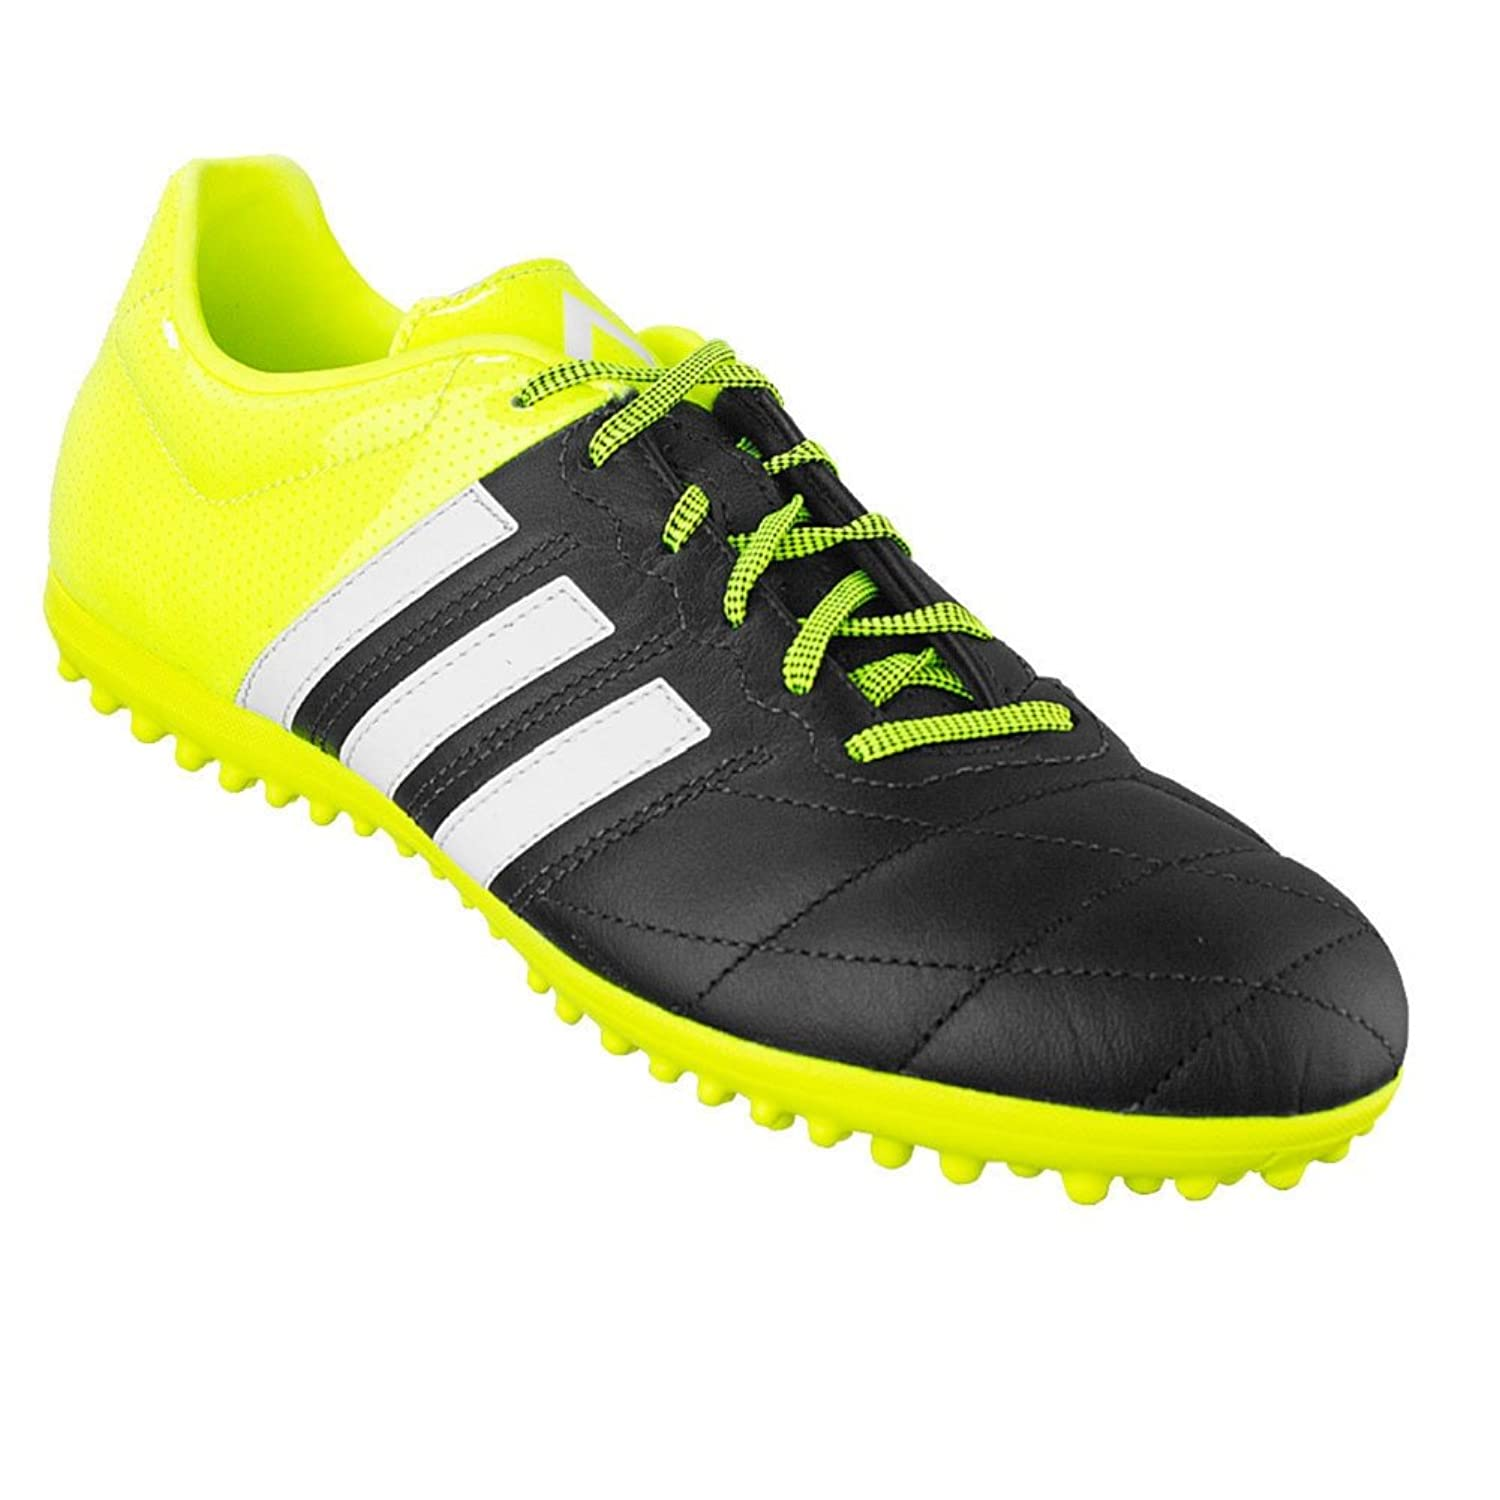 ecc859884 Ace 15.3 Tf Leather Soccer Shoes